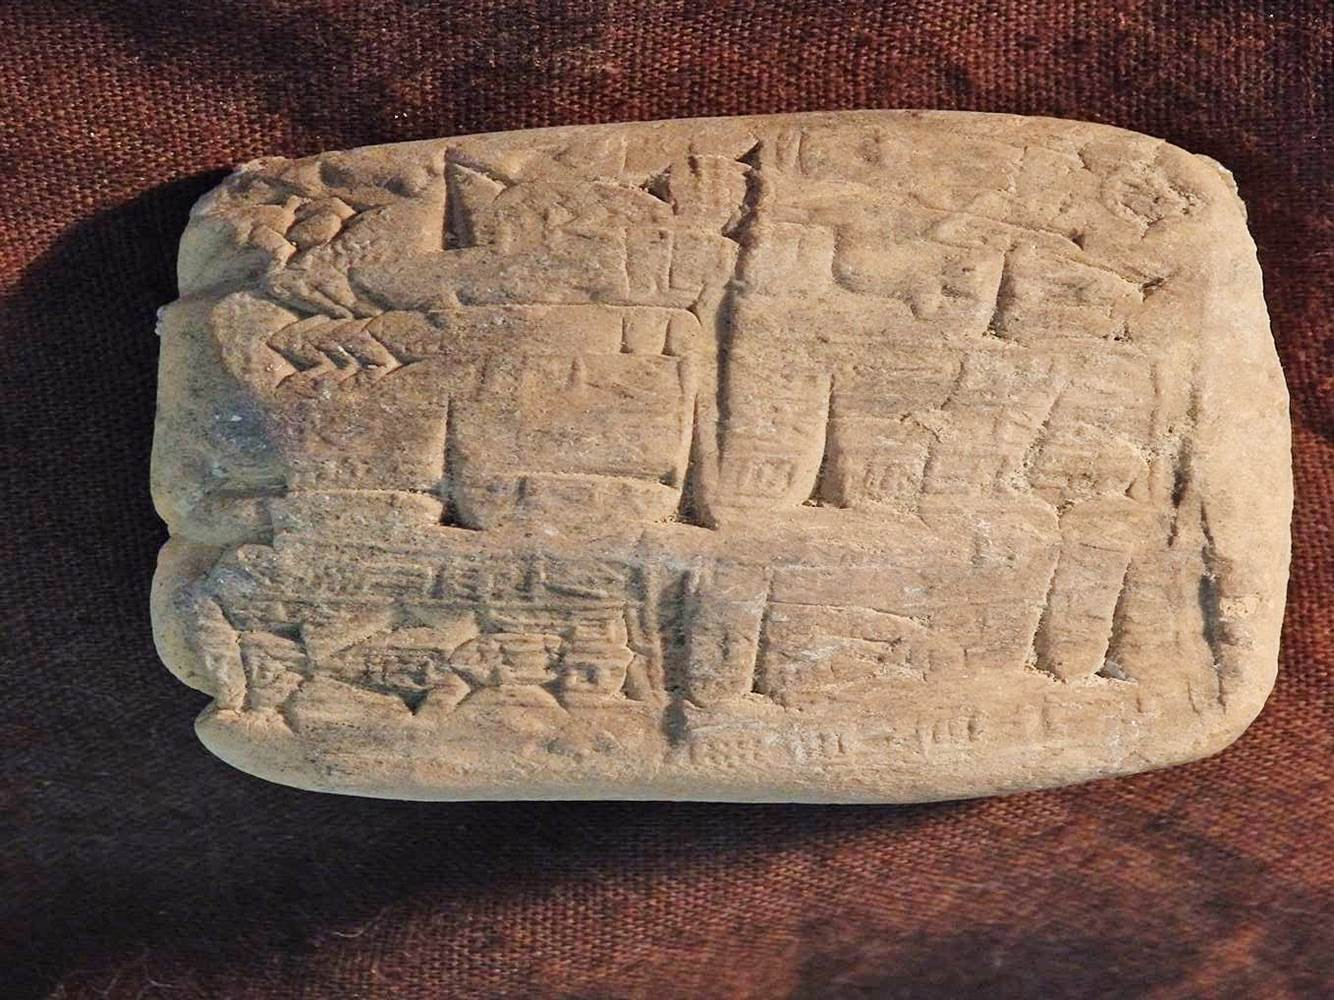 What Ancient Artifacts Did Hobby Lobby Have?